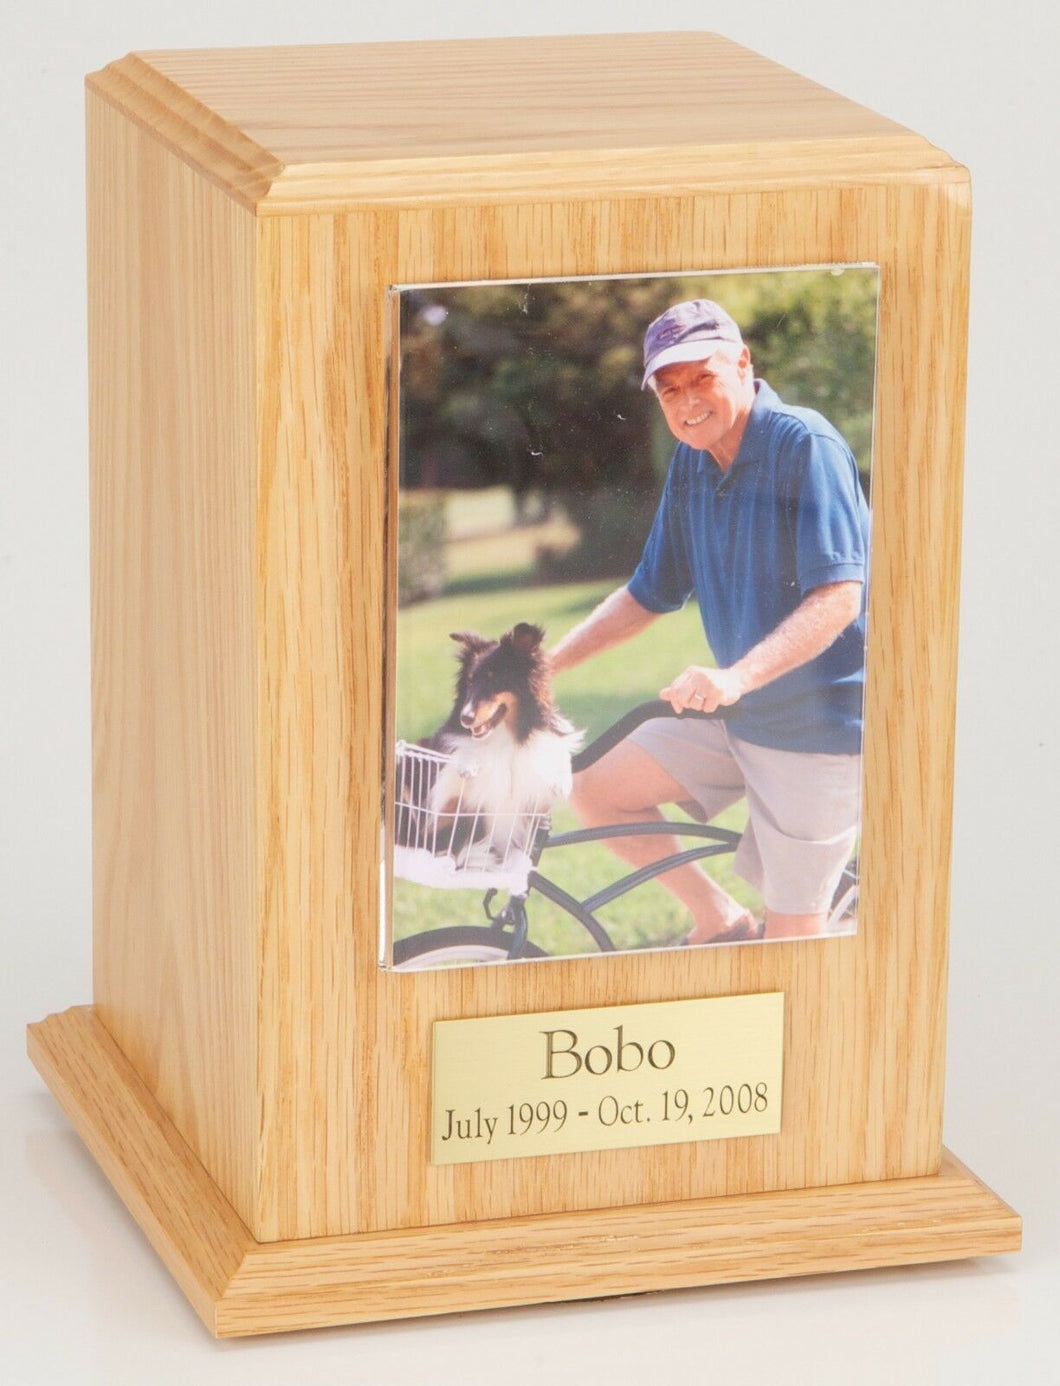 Small 35 Cubic Inches Oak Pet Tower Photo Urn for Ashes w/Engravable Nameplate